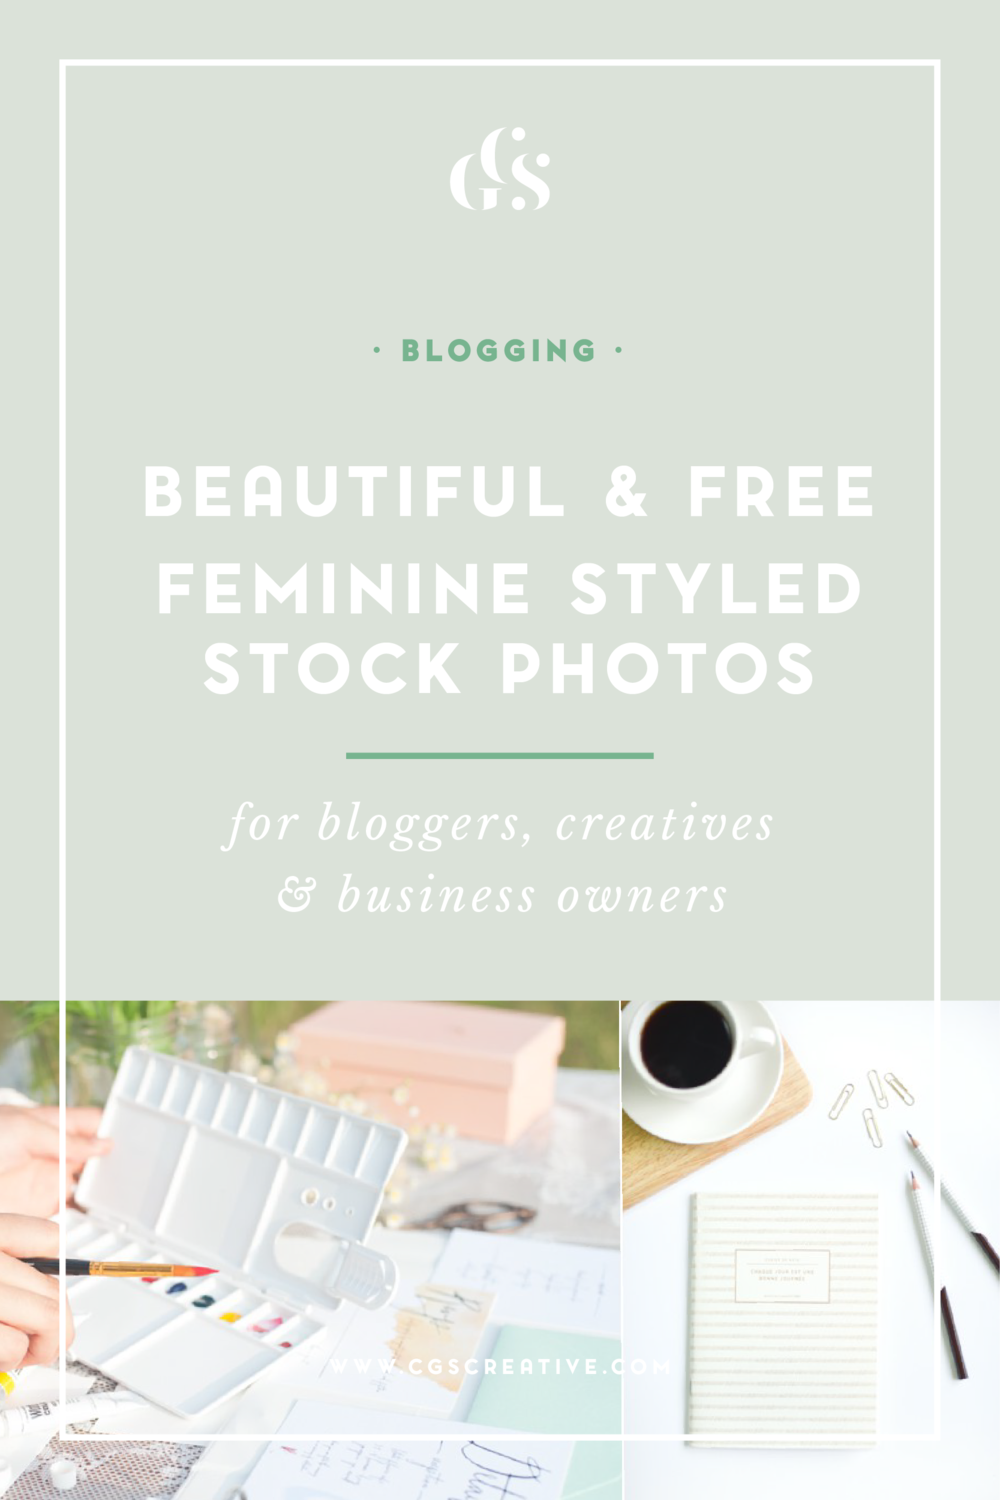 Free Stock Photos for Bloggers, Creatives & Business Owners